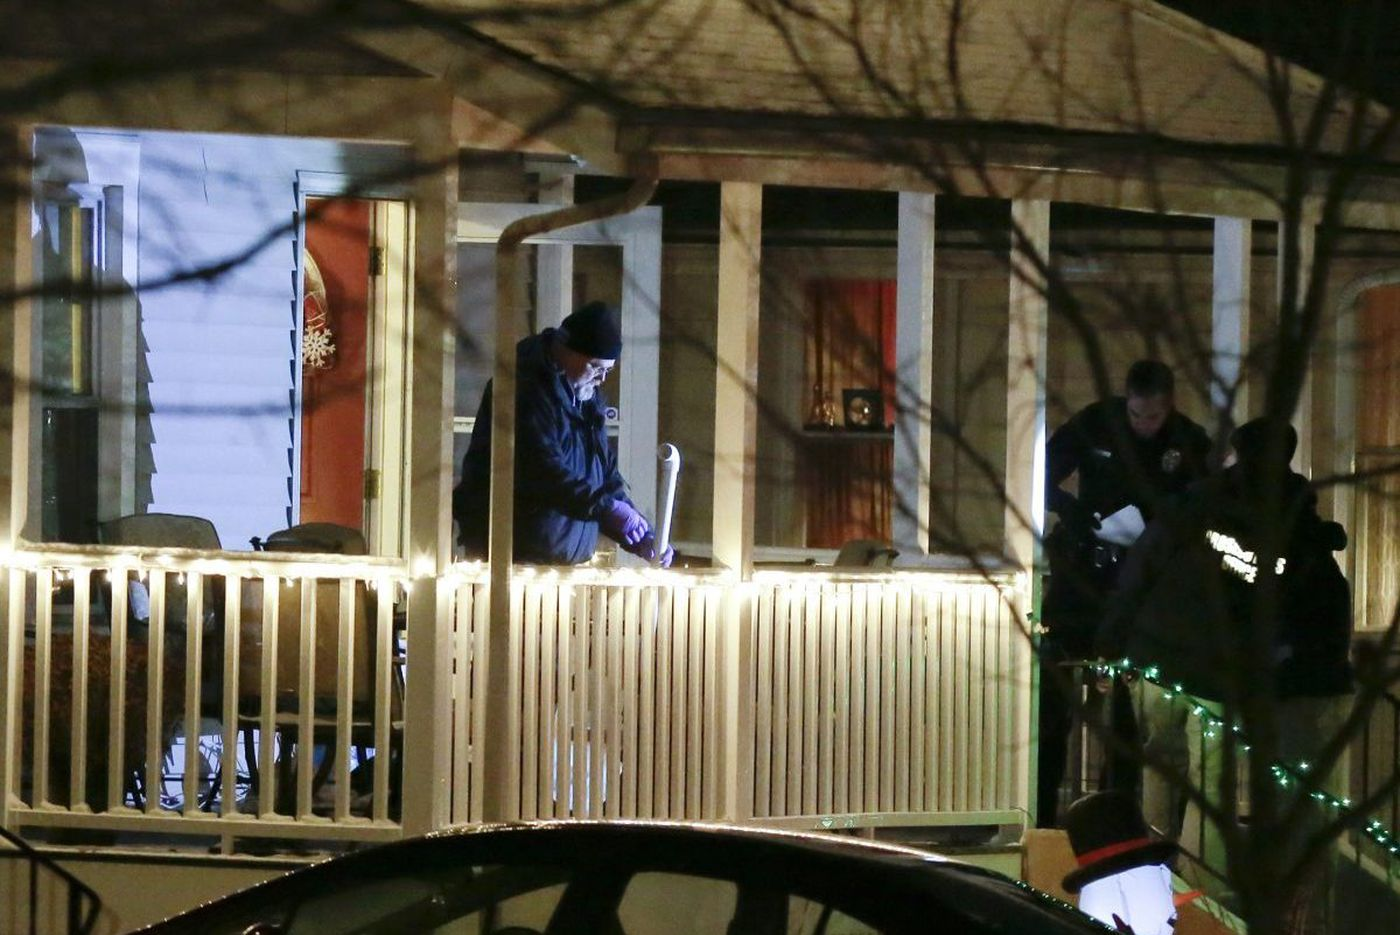 South Jersey man charged with murder in Collingswood double fatal stabbing